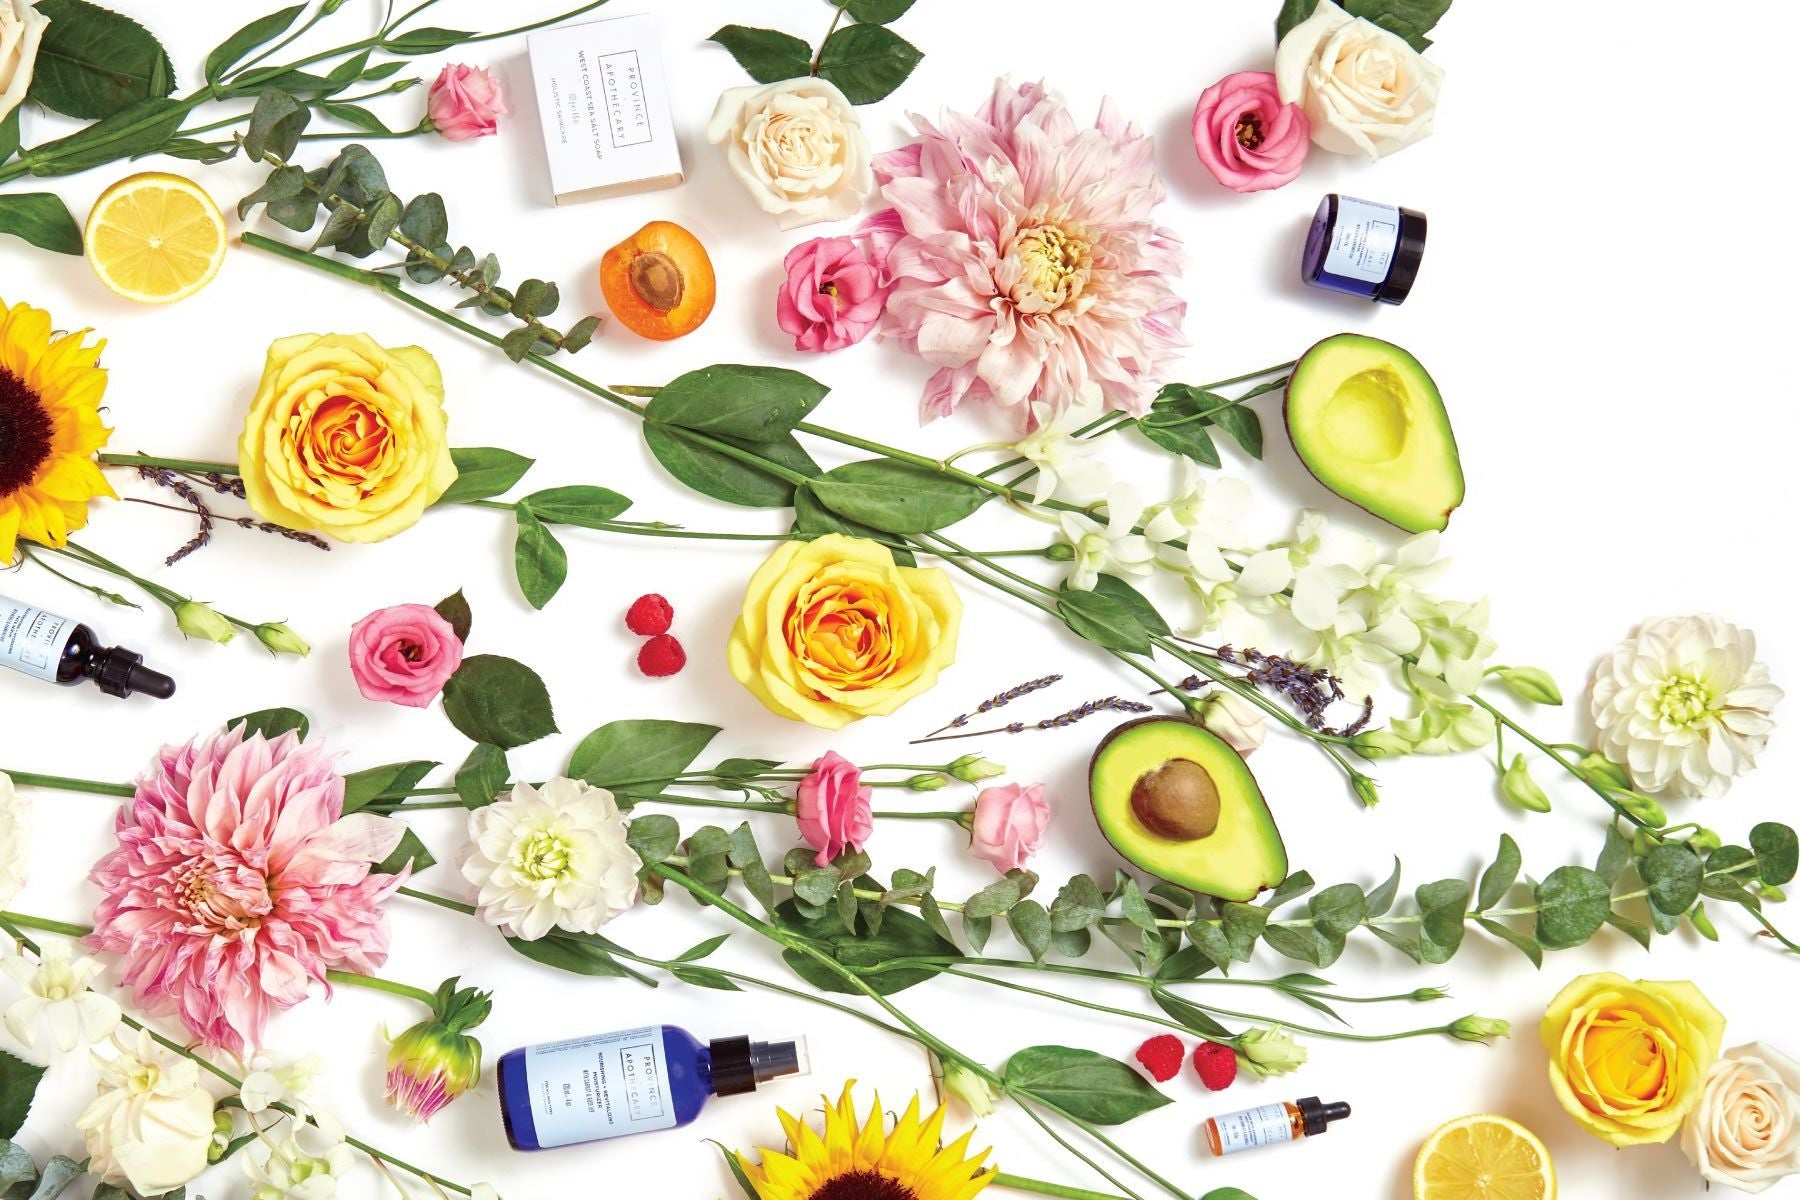 A flat lay of Province Apothecary products along with fresh flowers and other ingredients.